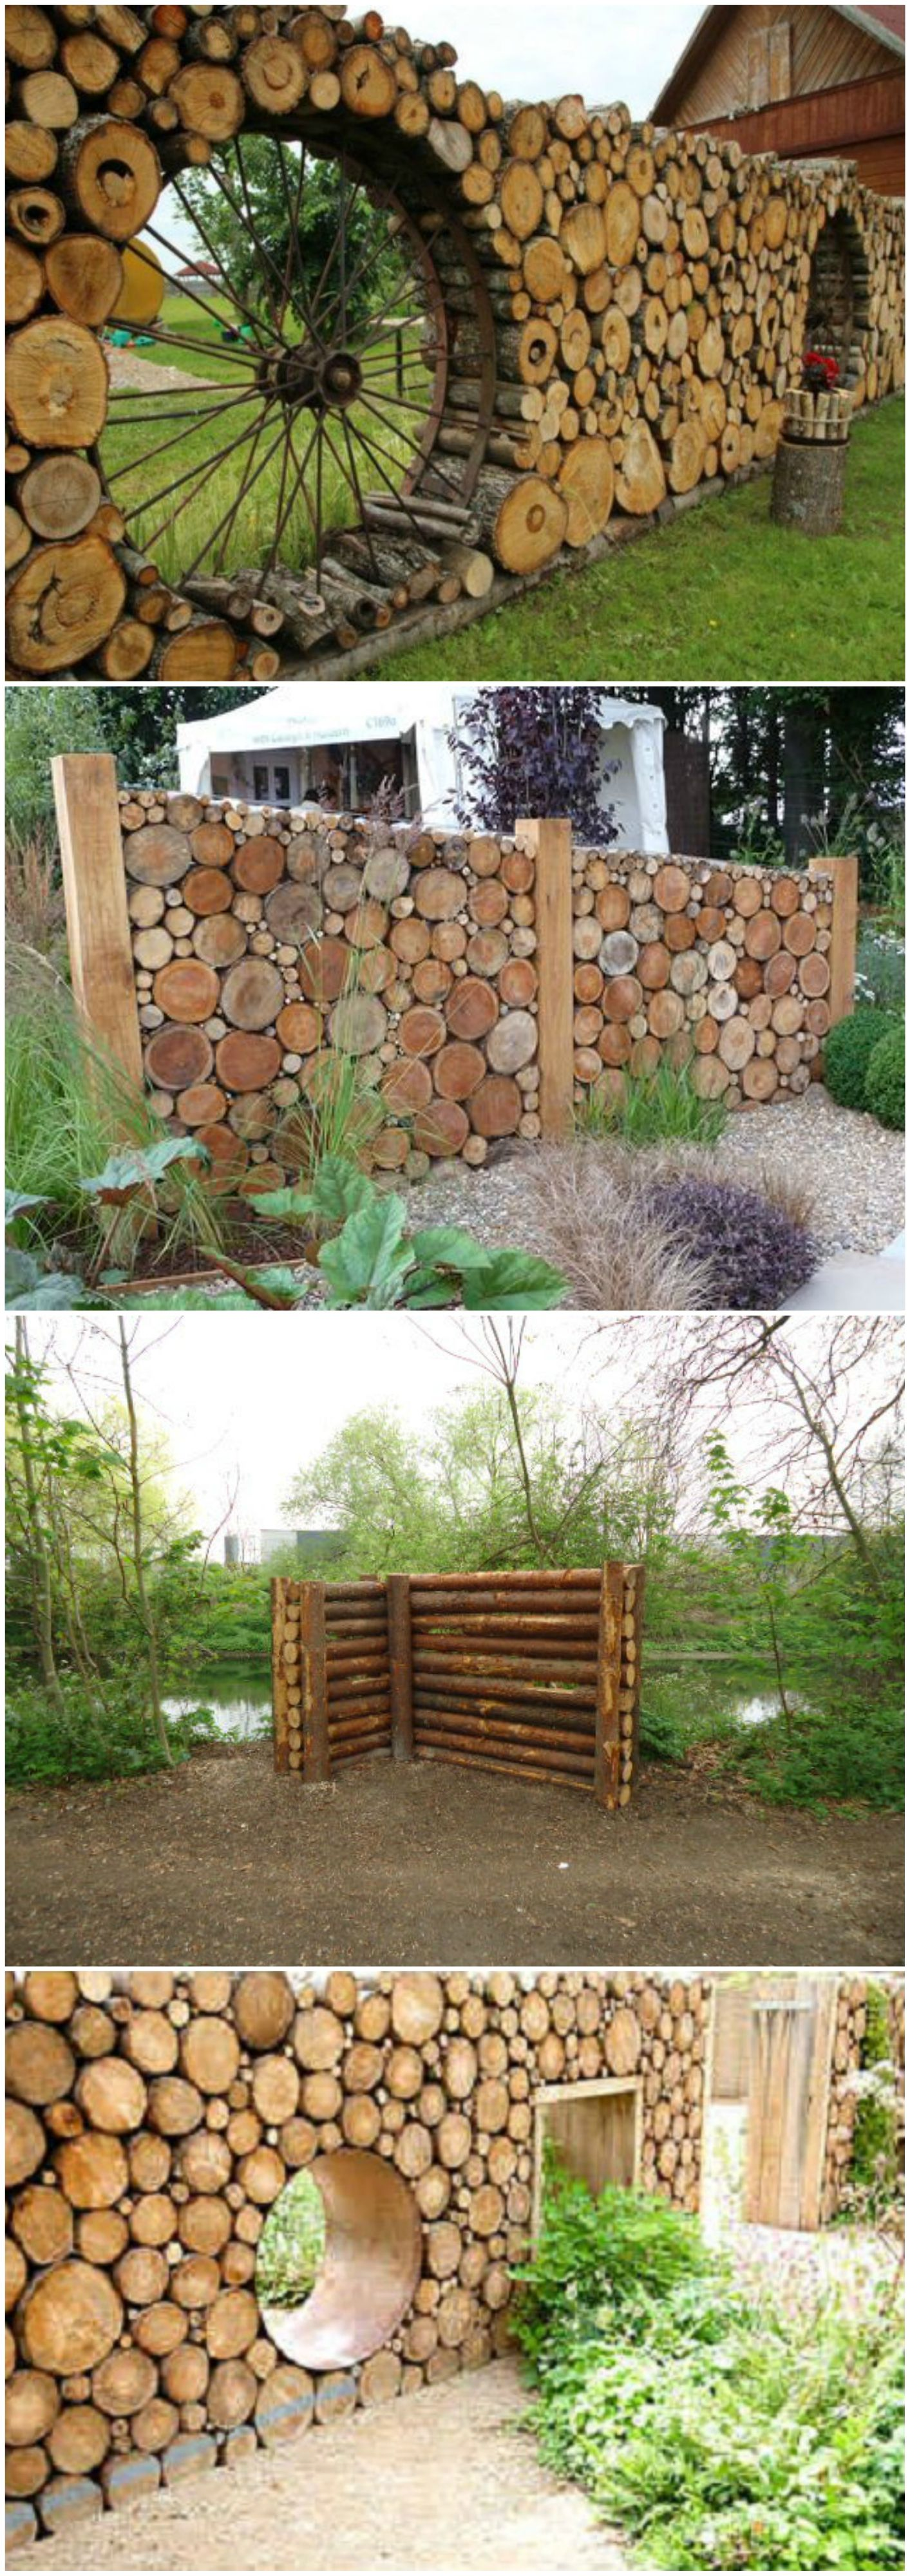 Cordwood Fences The Art Of Wood Pinte Electrical Rough In Wiring Earthship Tire Walls Pictures To Pin On More